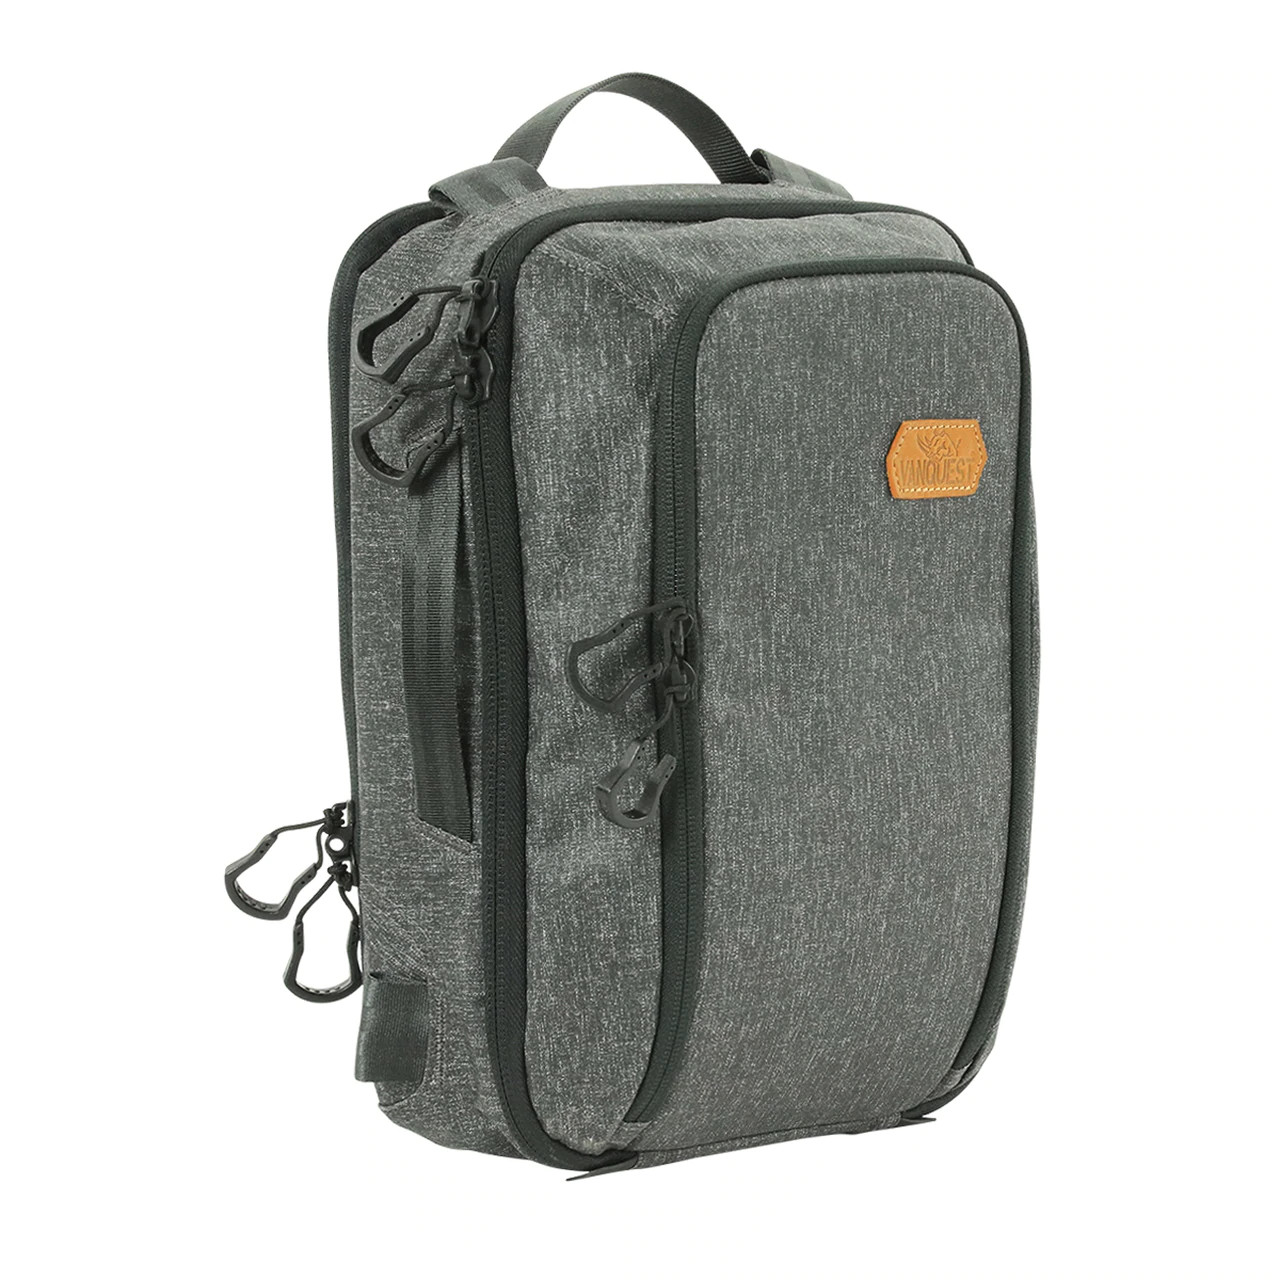 Vanquest CARBIDE-8 Convertable Sling Backpack Shadow Gray (8 Liters)